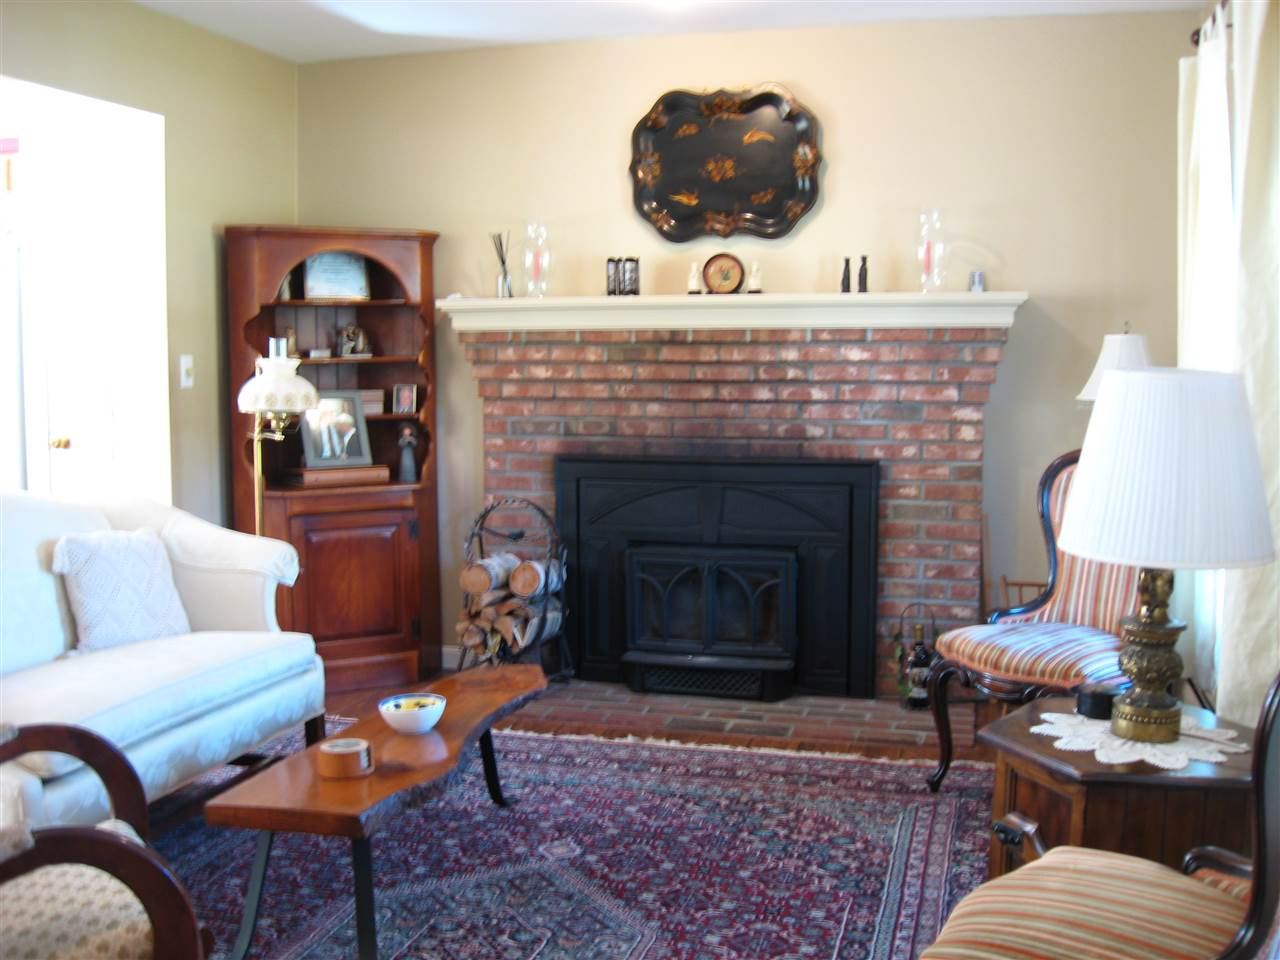 Wood stove insert in fireplace 11169308